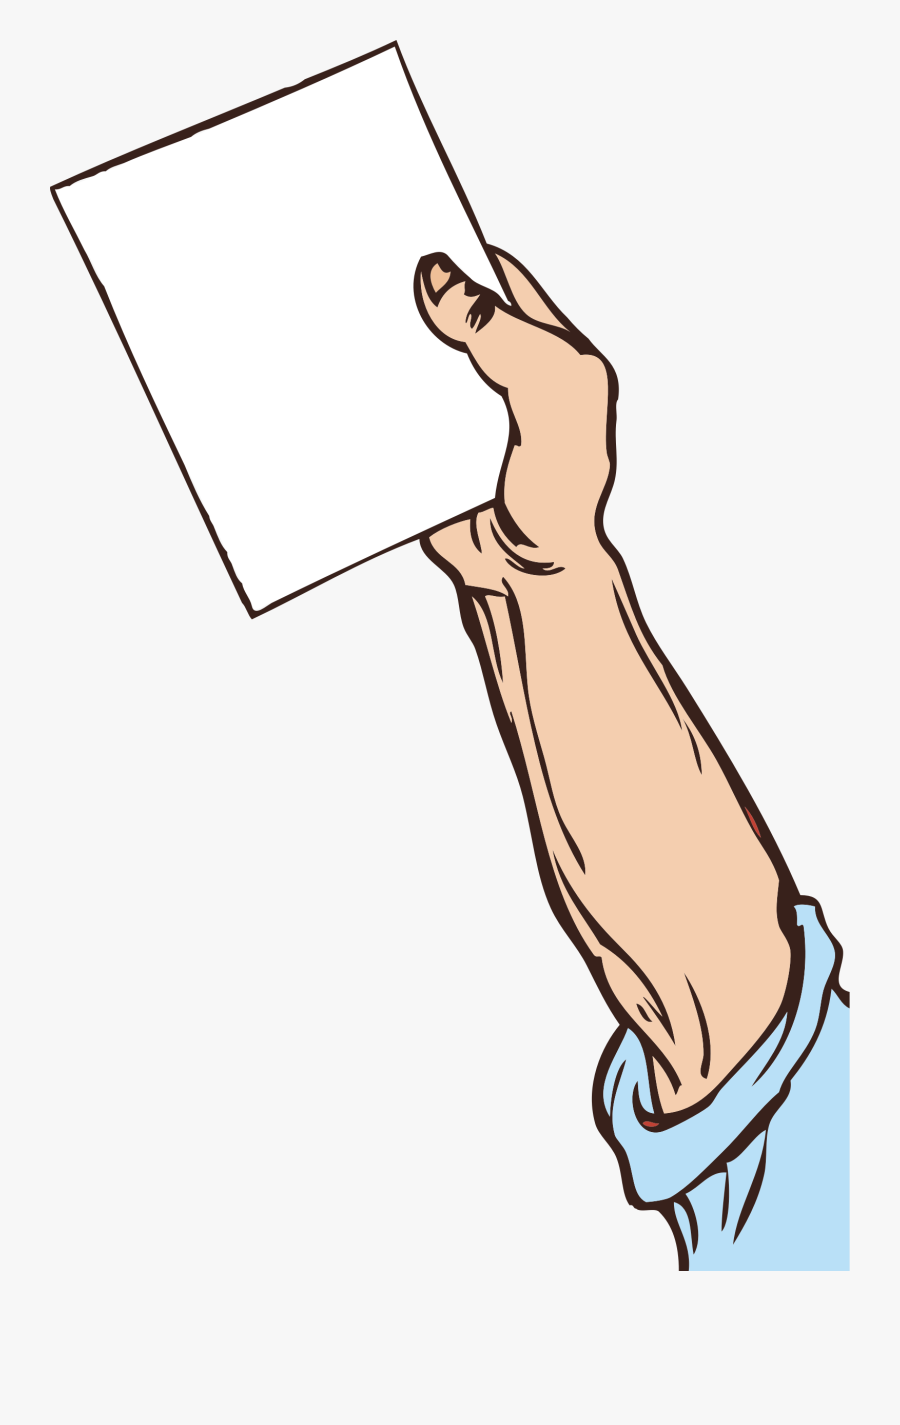 Hand Holding Paper - Handing Over A Paper, Transparent Clipart